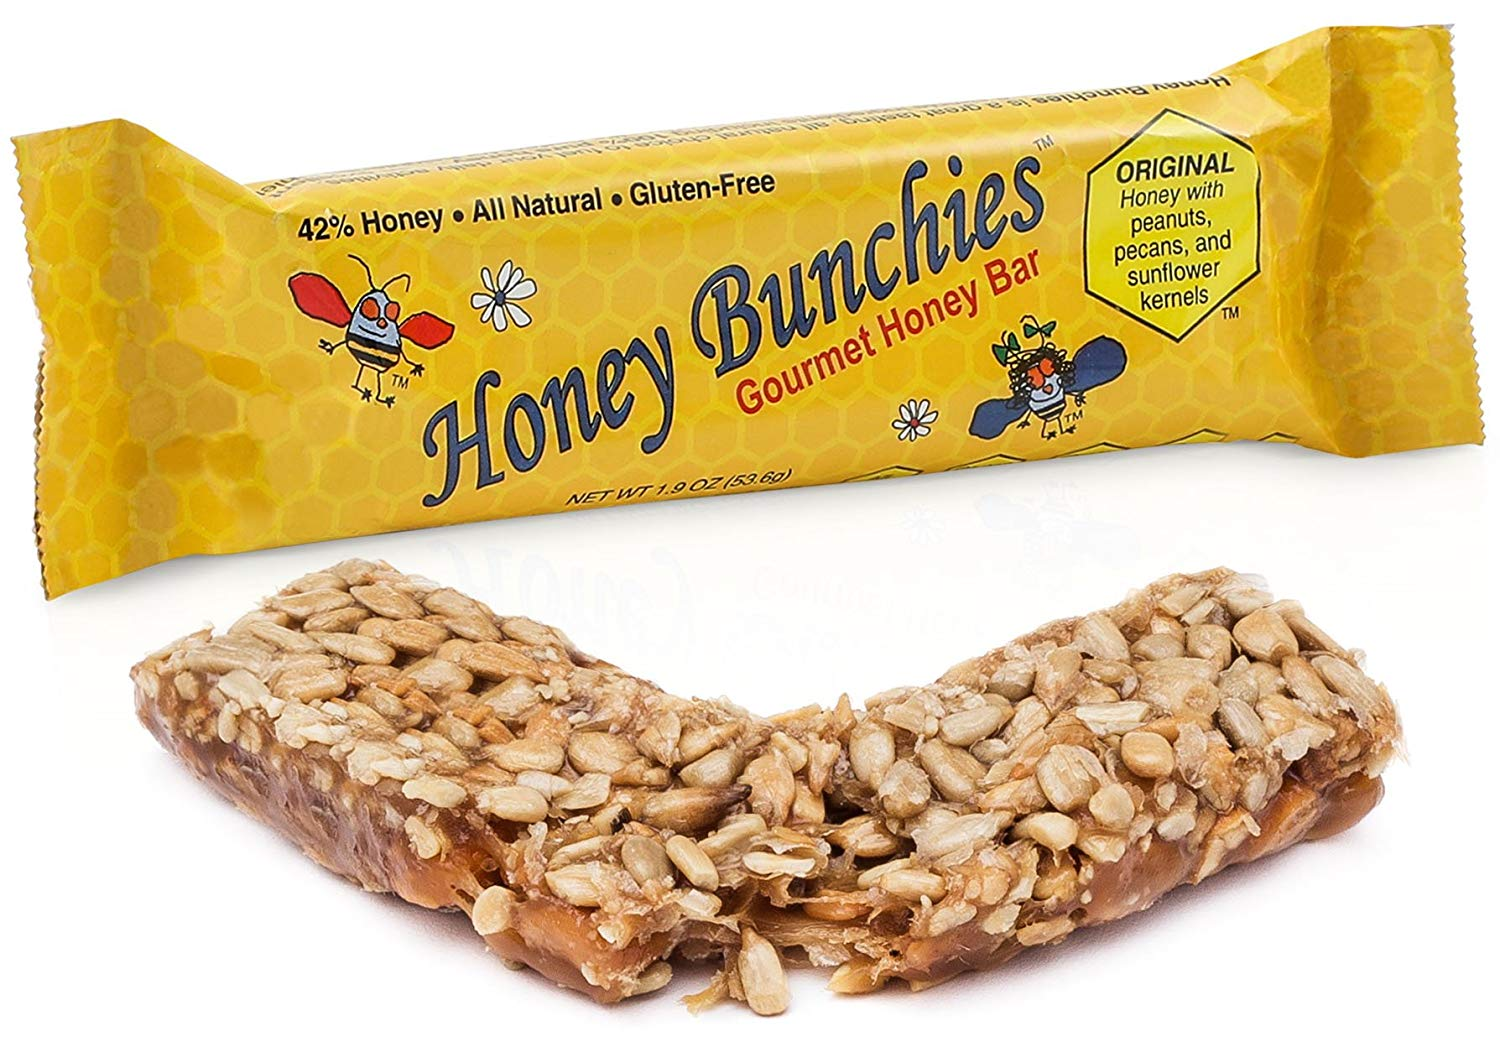 All-Natural Gourmet Honey Bars by Honey Bunchies